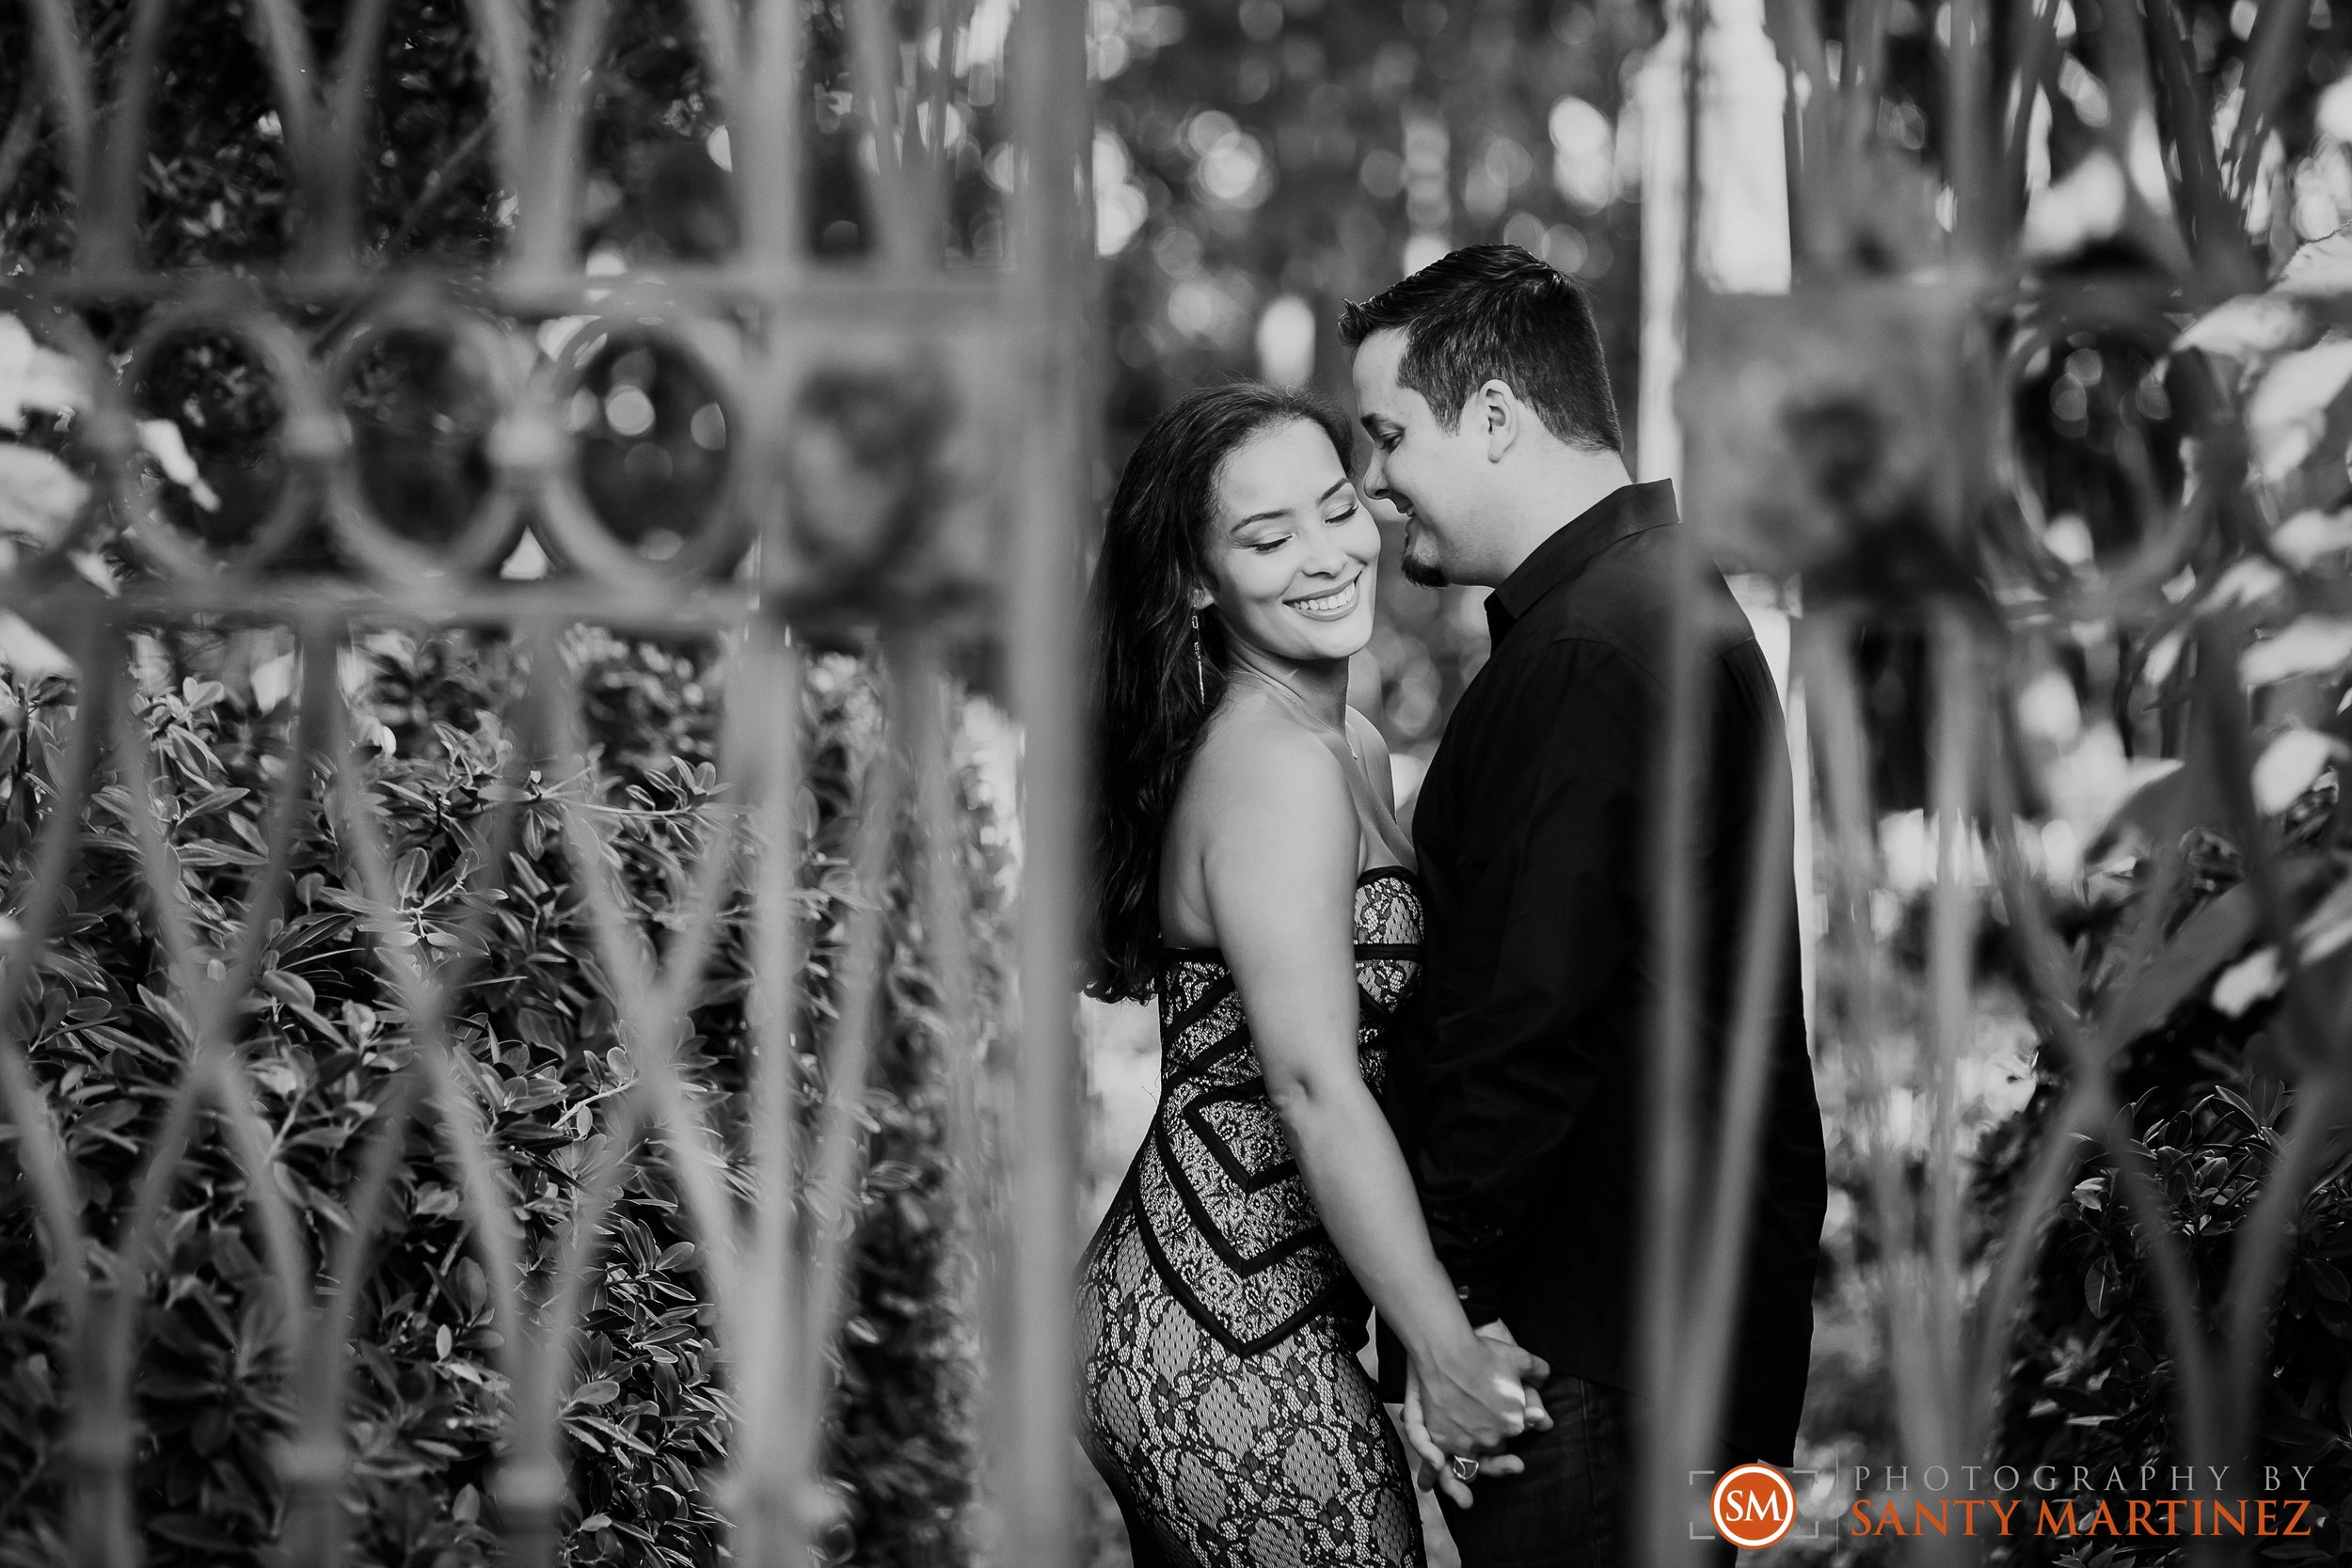 Vizcaya Engagement Session - Photography by Santy Martinez-13.jpg